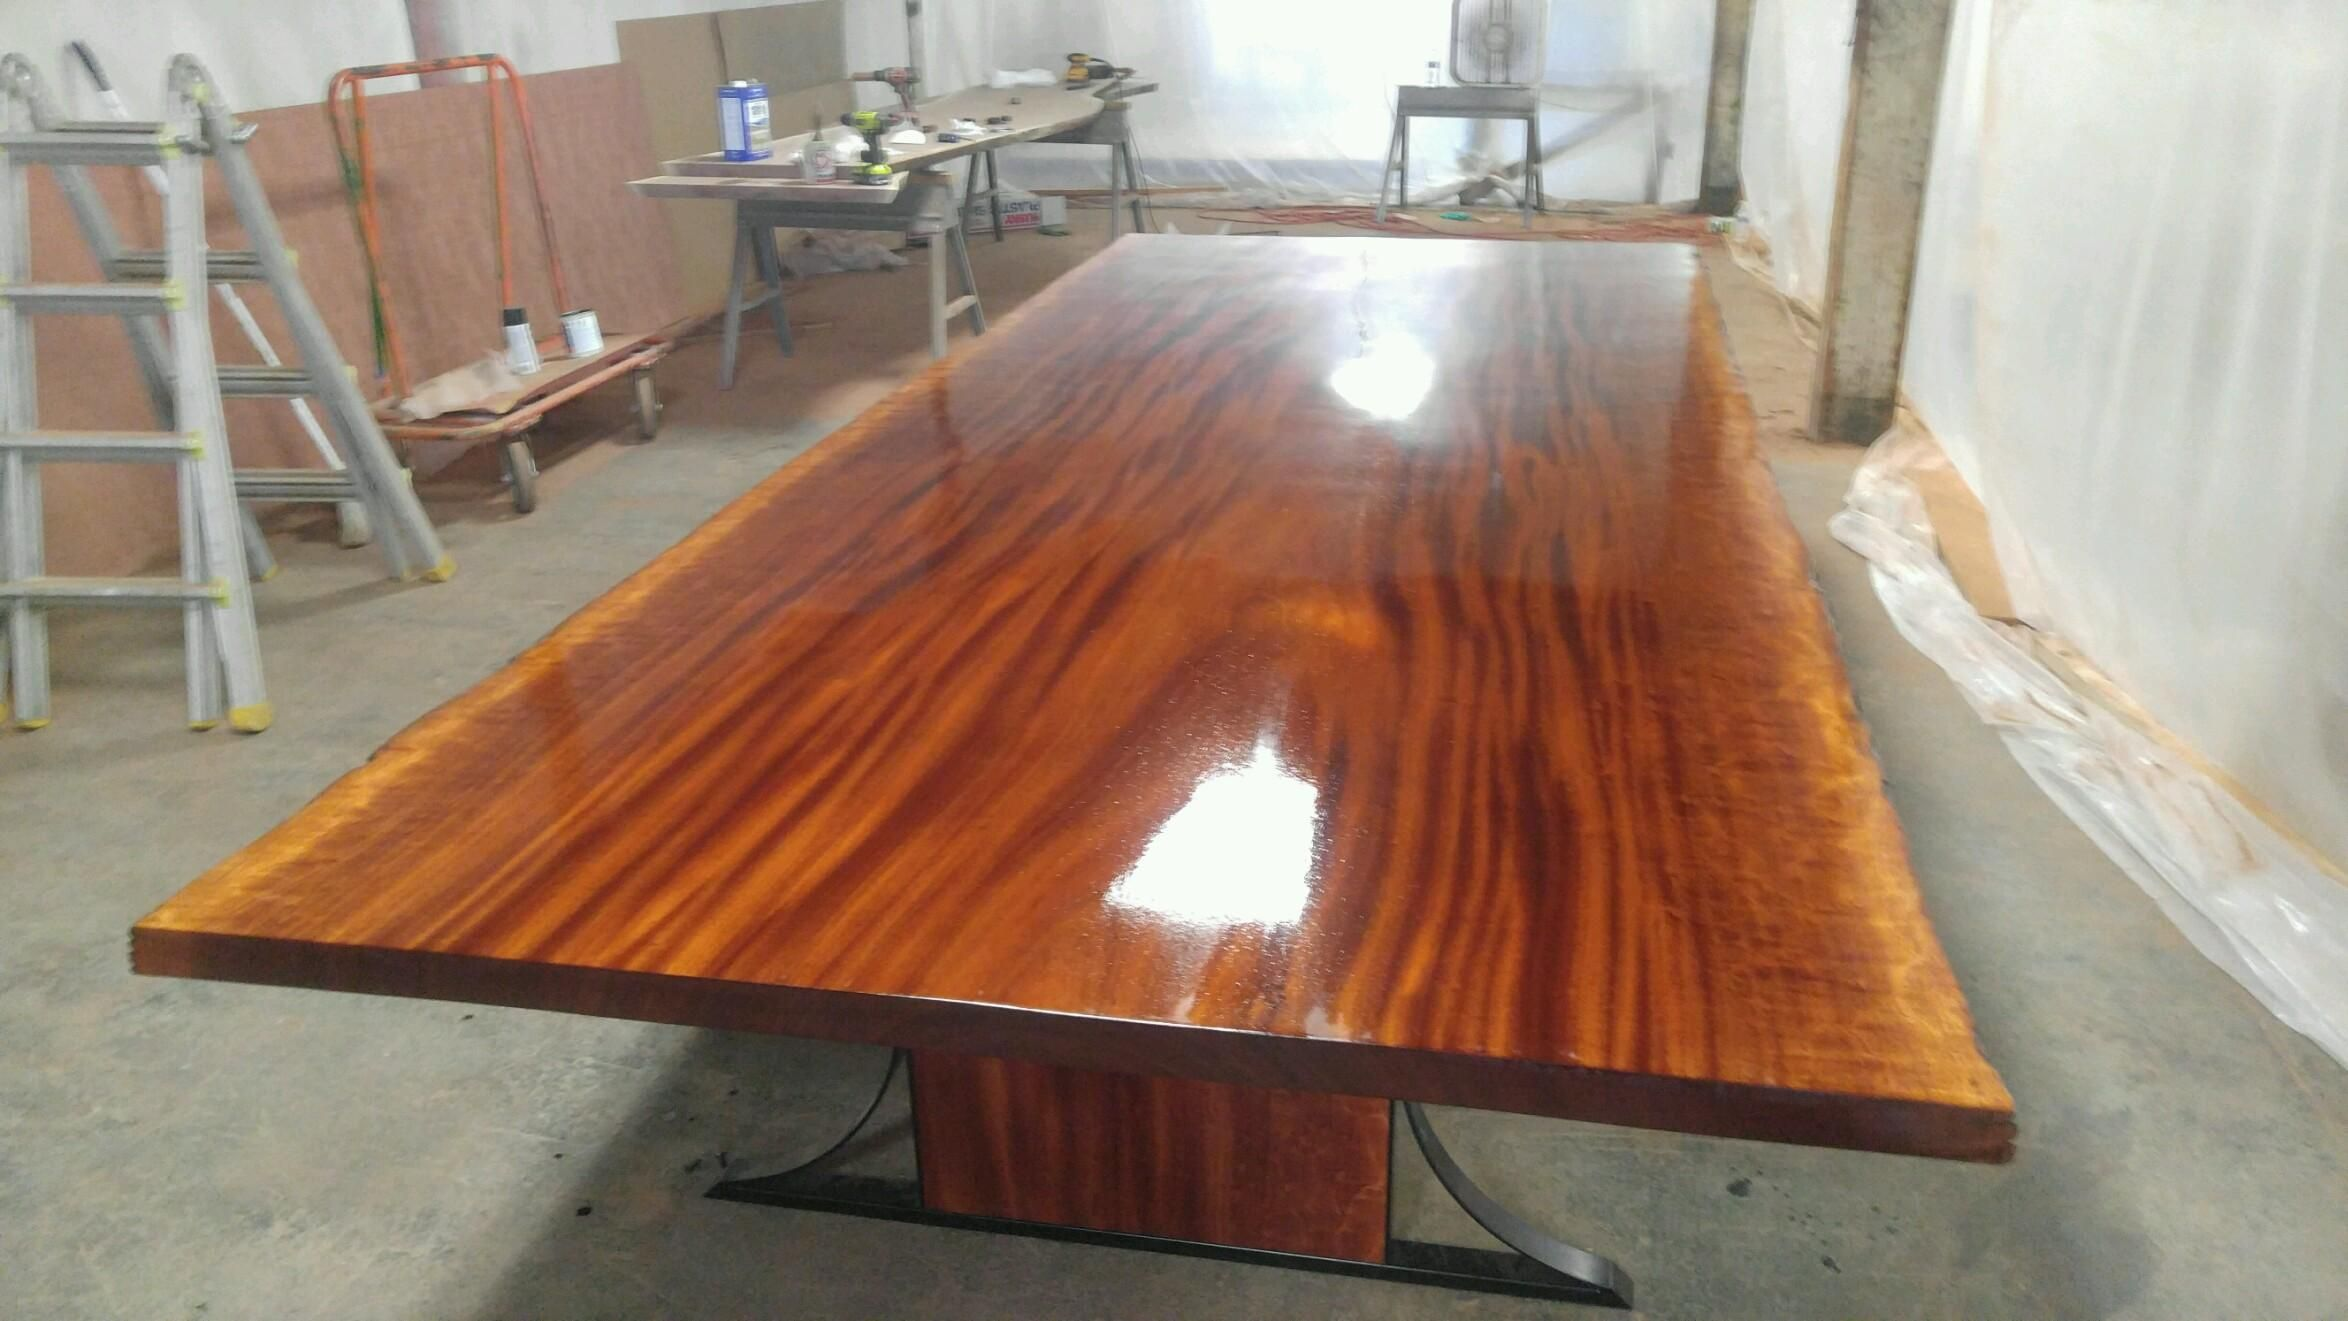 Custom Sipo Mahogany Dining Table by Donald Mee Designs  : 1422511102563 from www.custommade.com size 2348 x 1321 jpeg 244kB